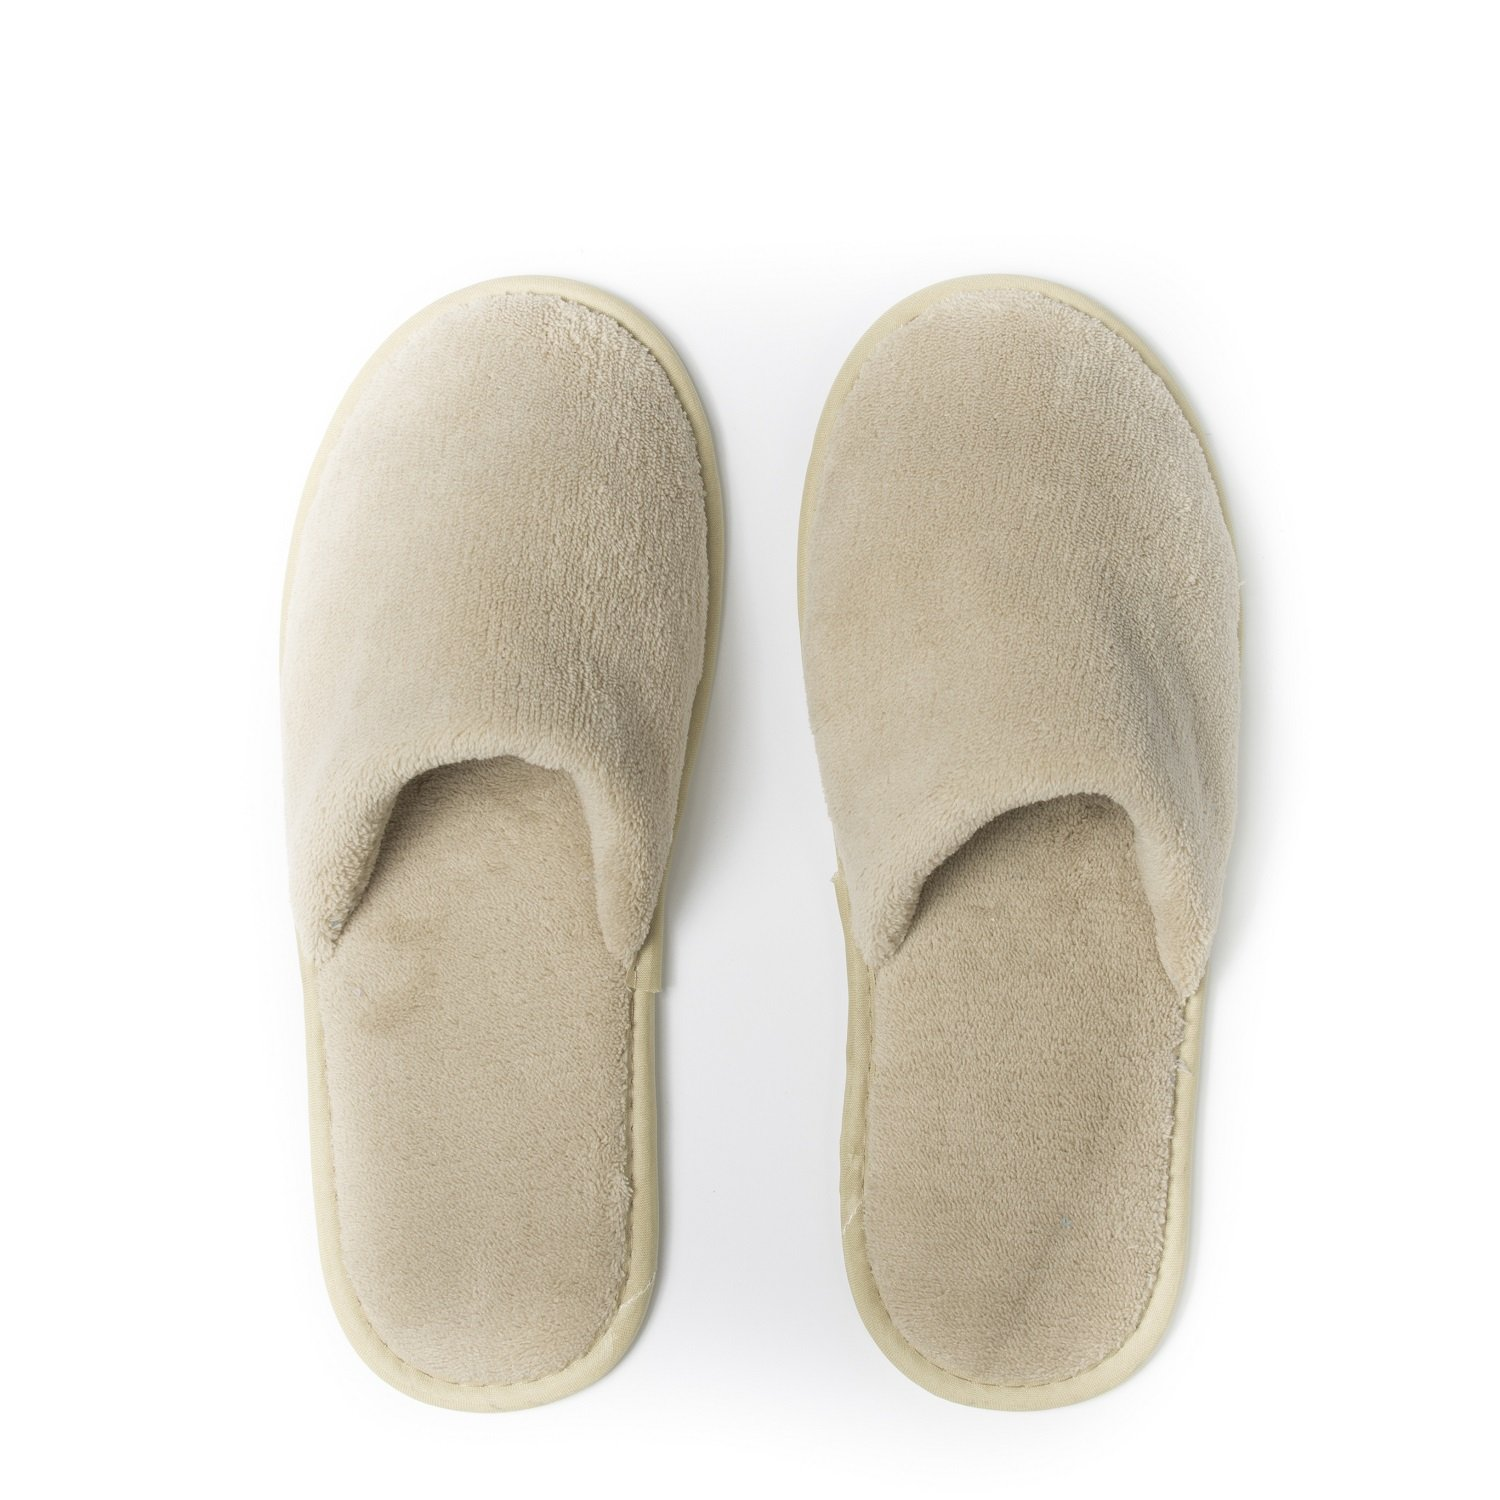 Julitrip Men and Women Cotton Coral Fleece Spa Slipper Houses Slippers White